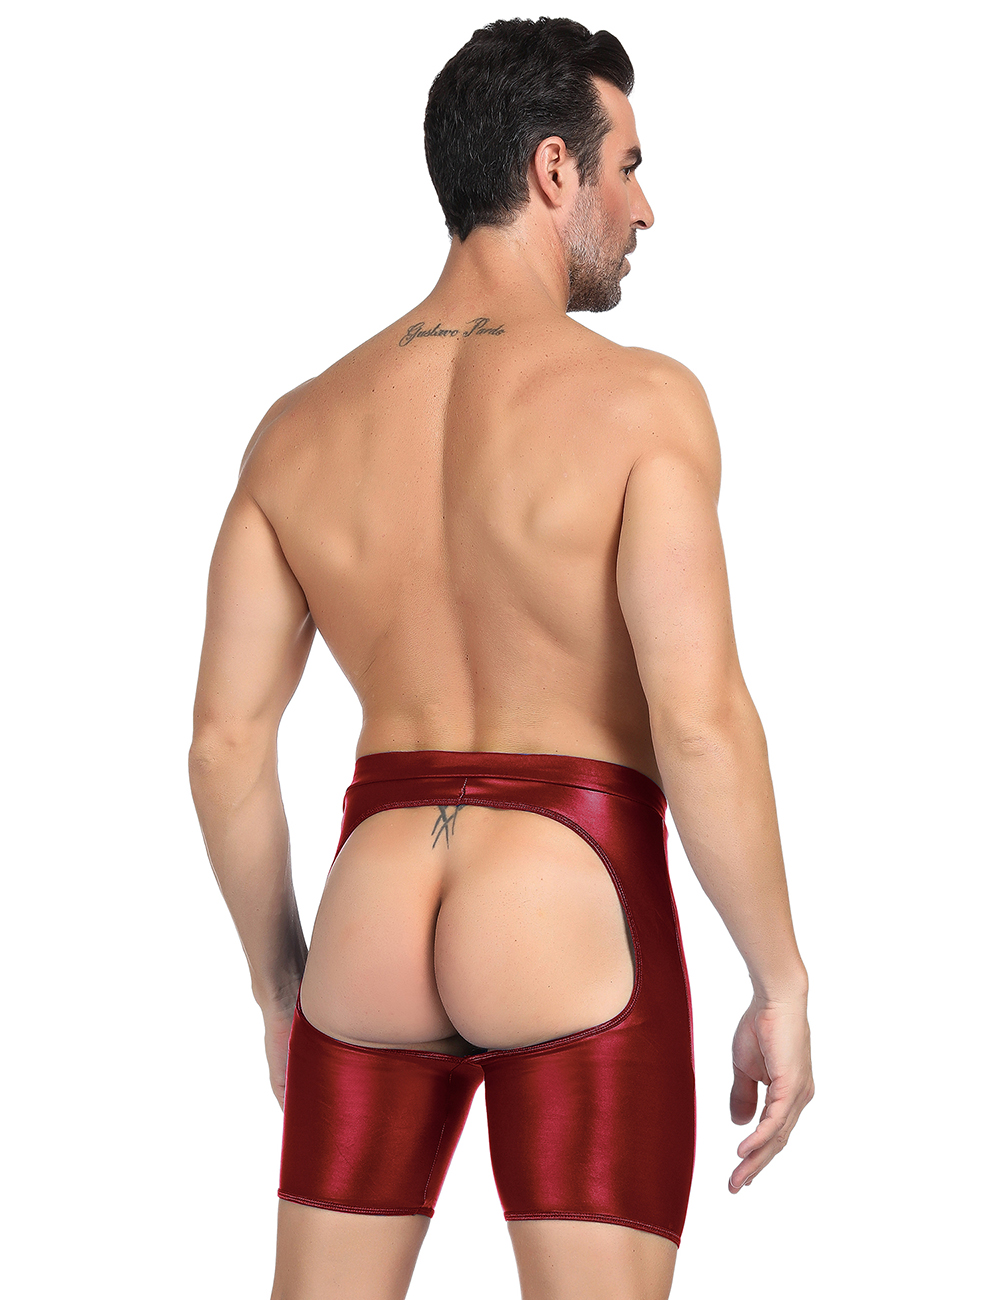 Men's wetlook boxer briefs open back 1064 Edmonton